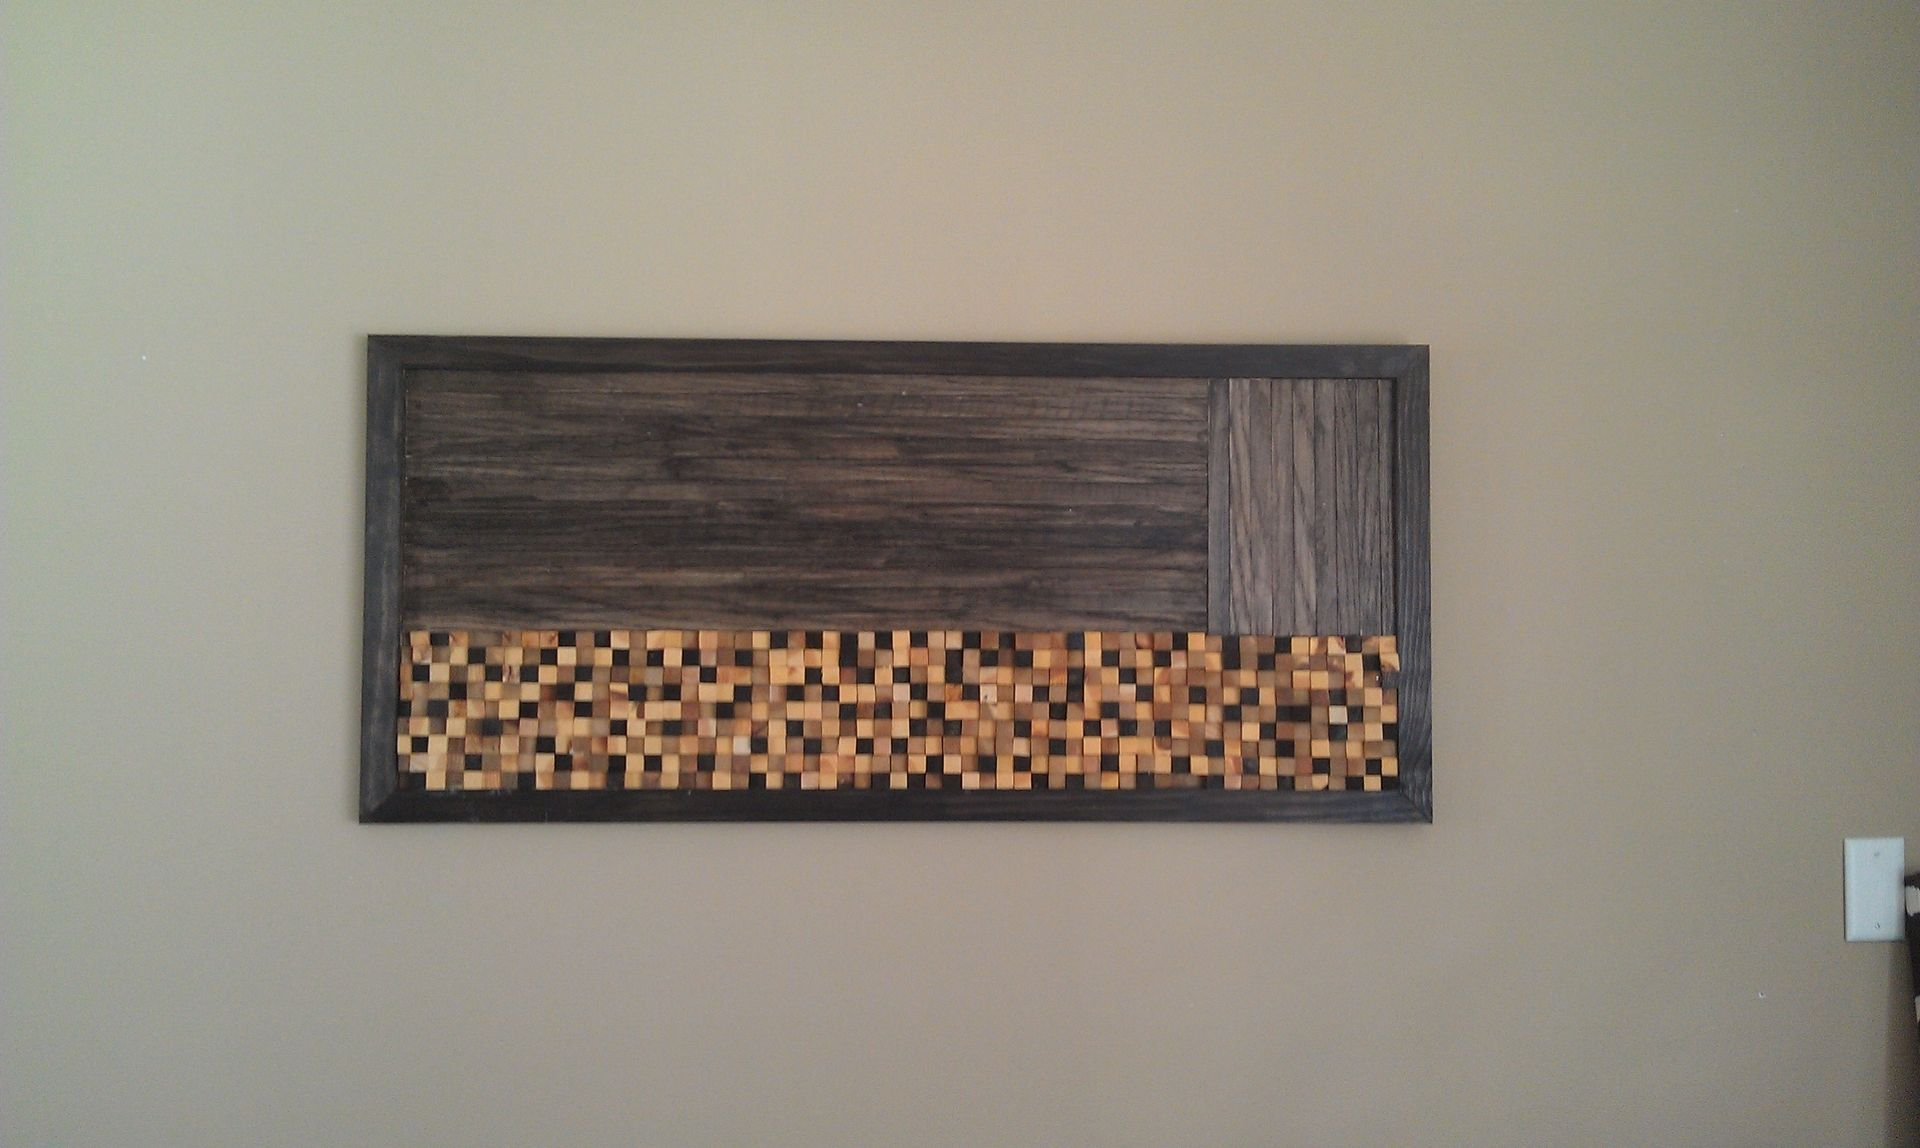 Unique Wood Wall Decor : Handmade wood mosaic wall art by built concrete